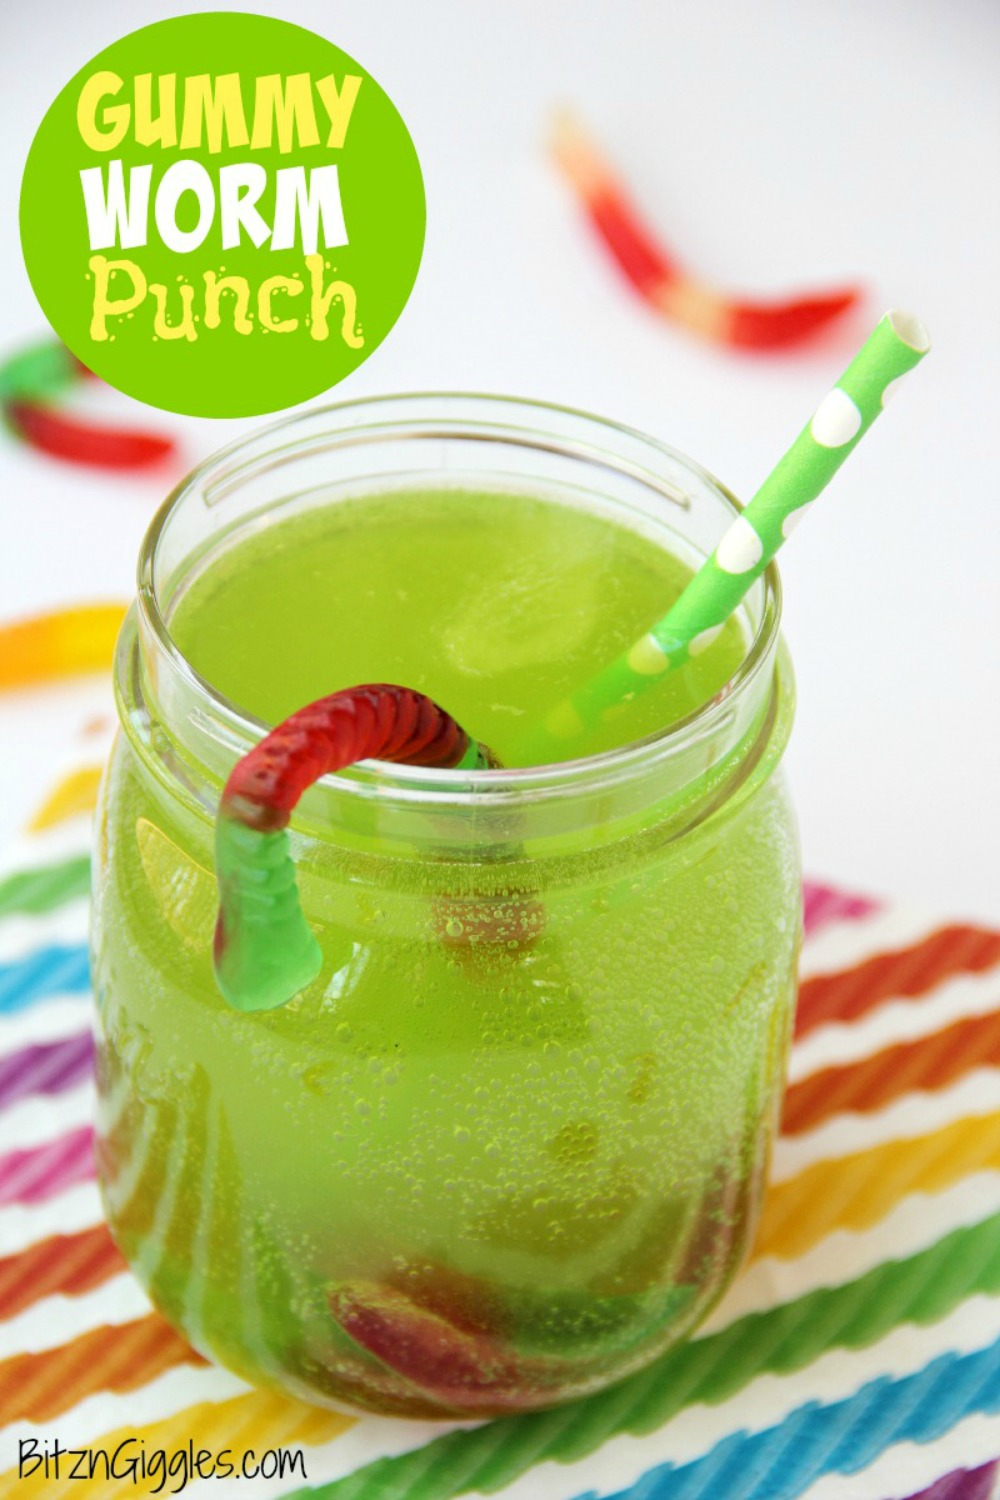 Gummy Worm Punch - Gummy worms are frozen in a punch mixture and emerge from the ice as the drink is enjoyed! So much fun and perfect for birthday parties and Halloween!